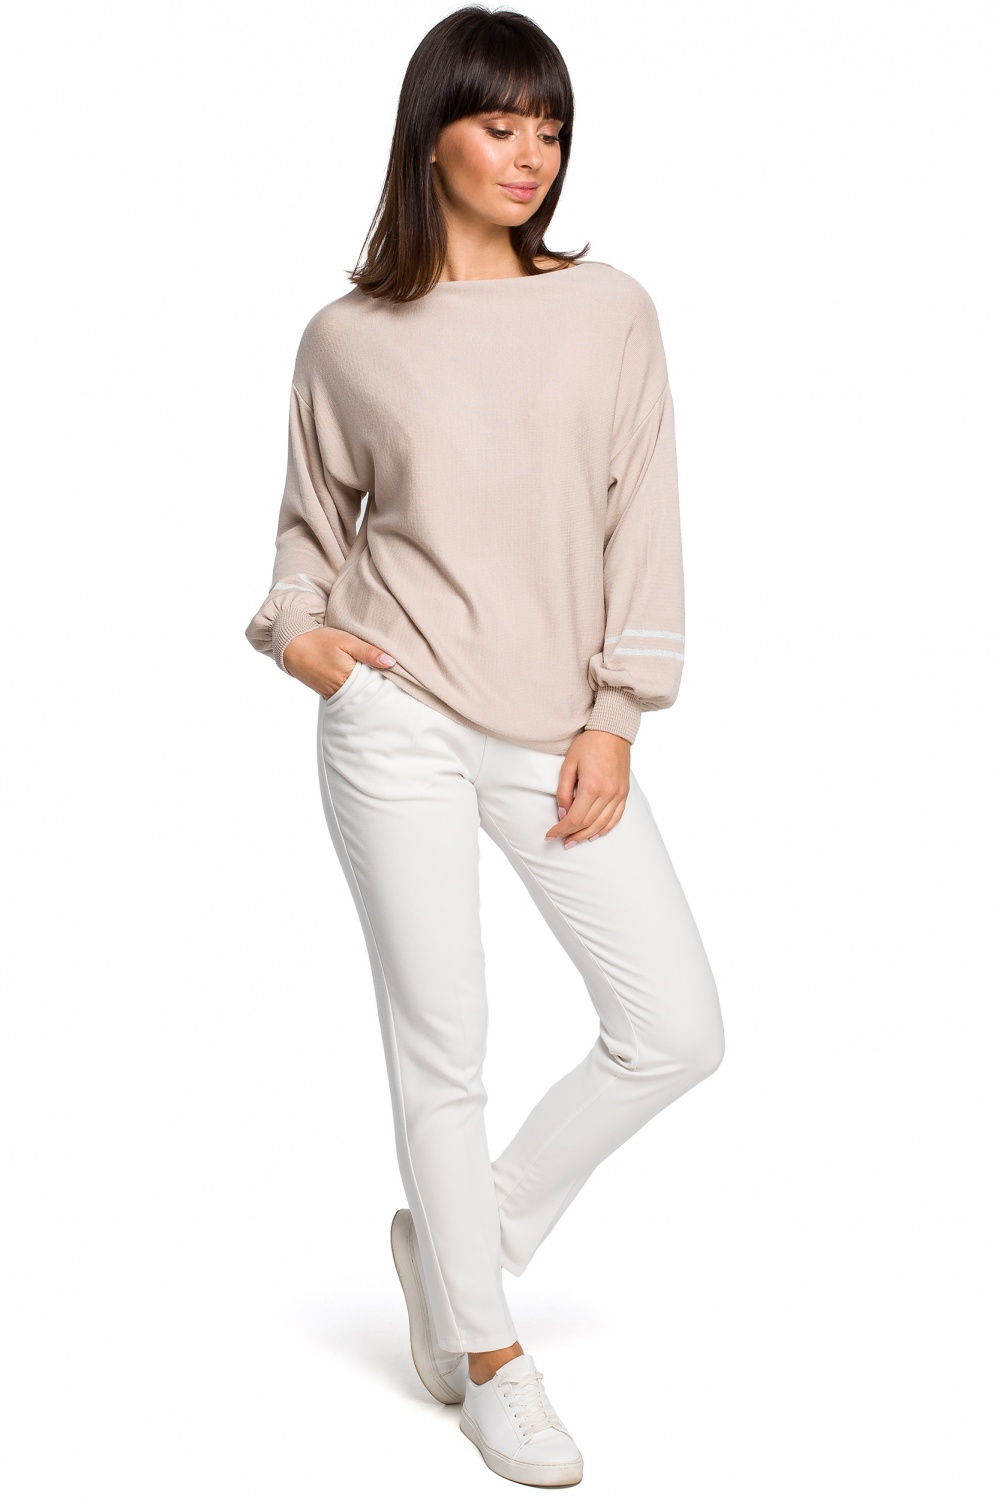 Pulover model 129139 BE Knit